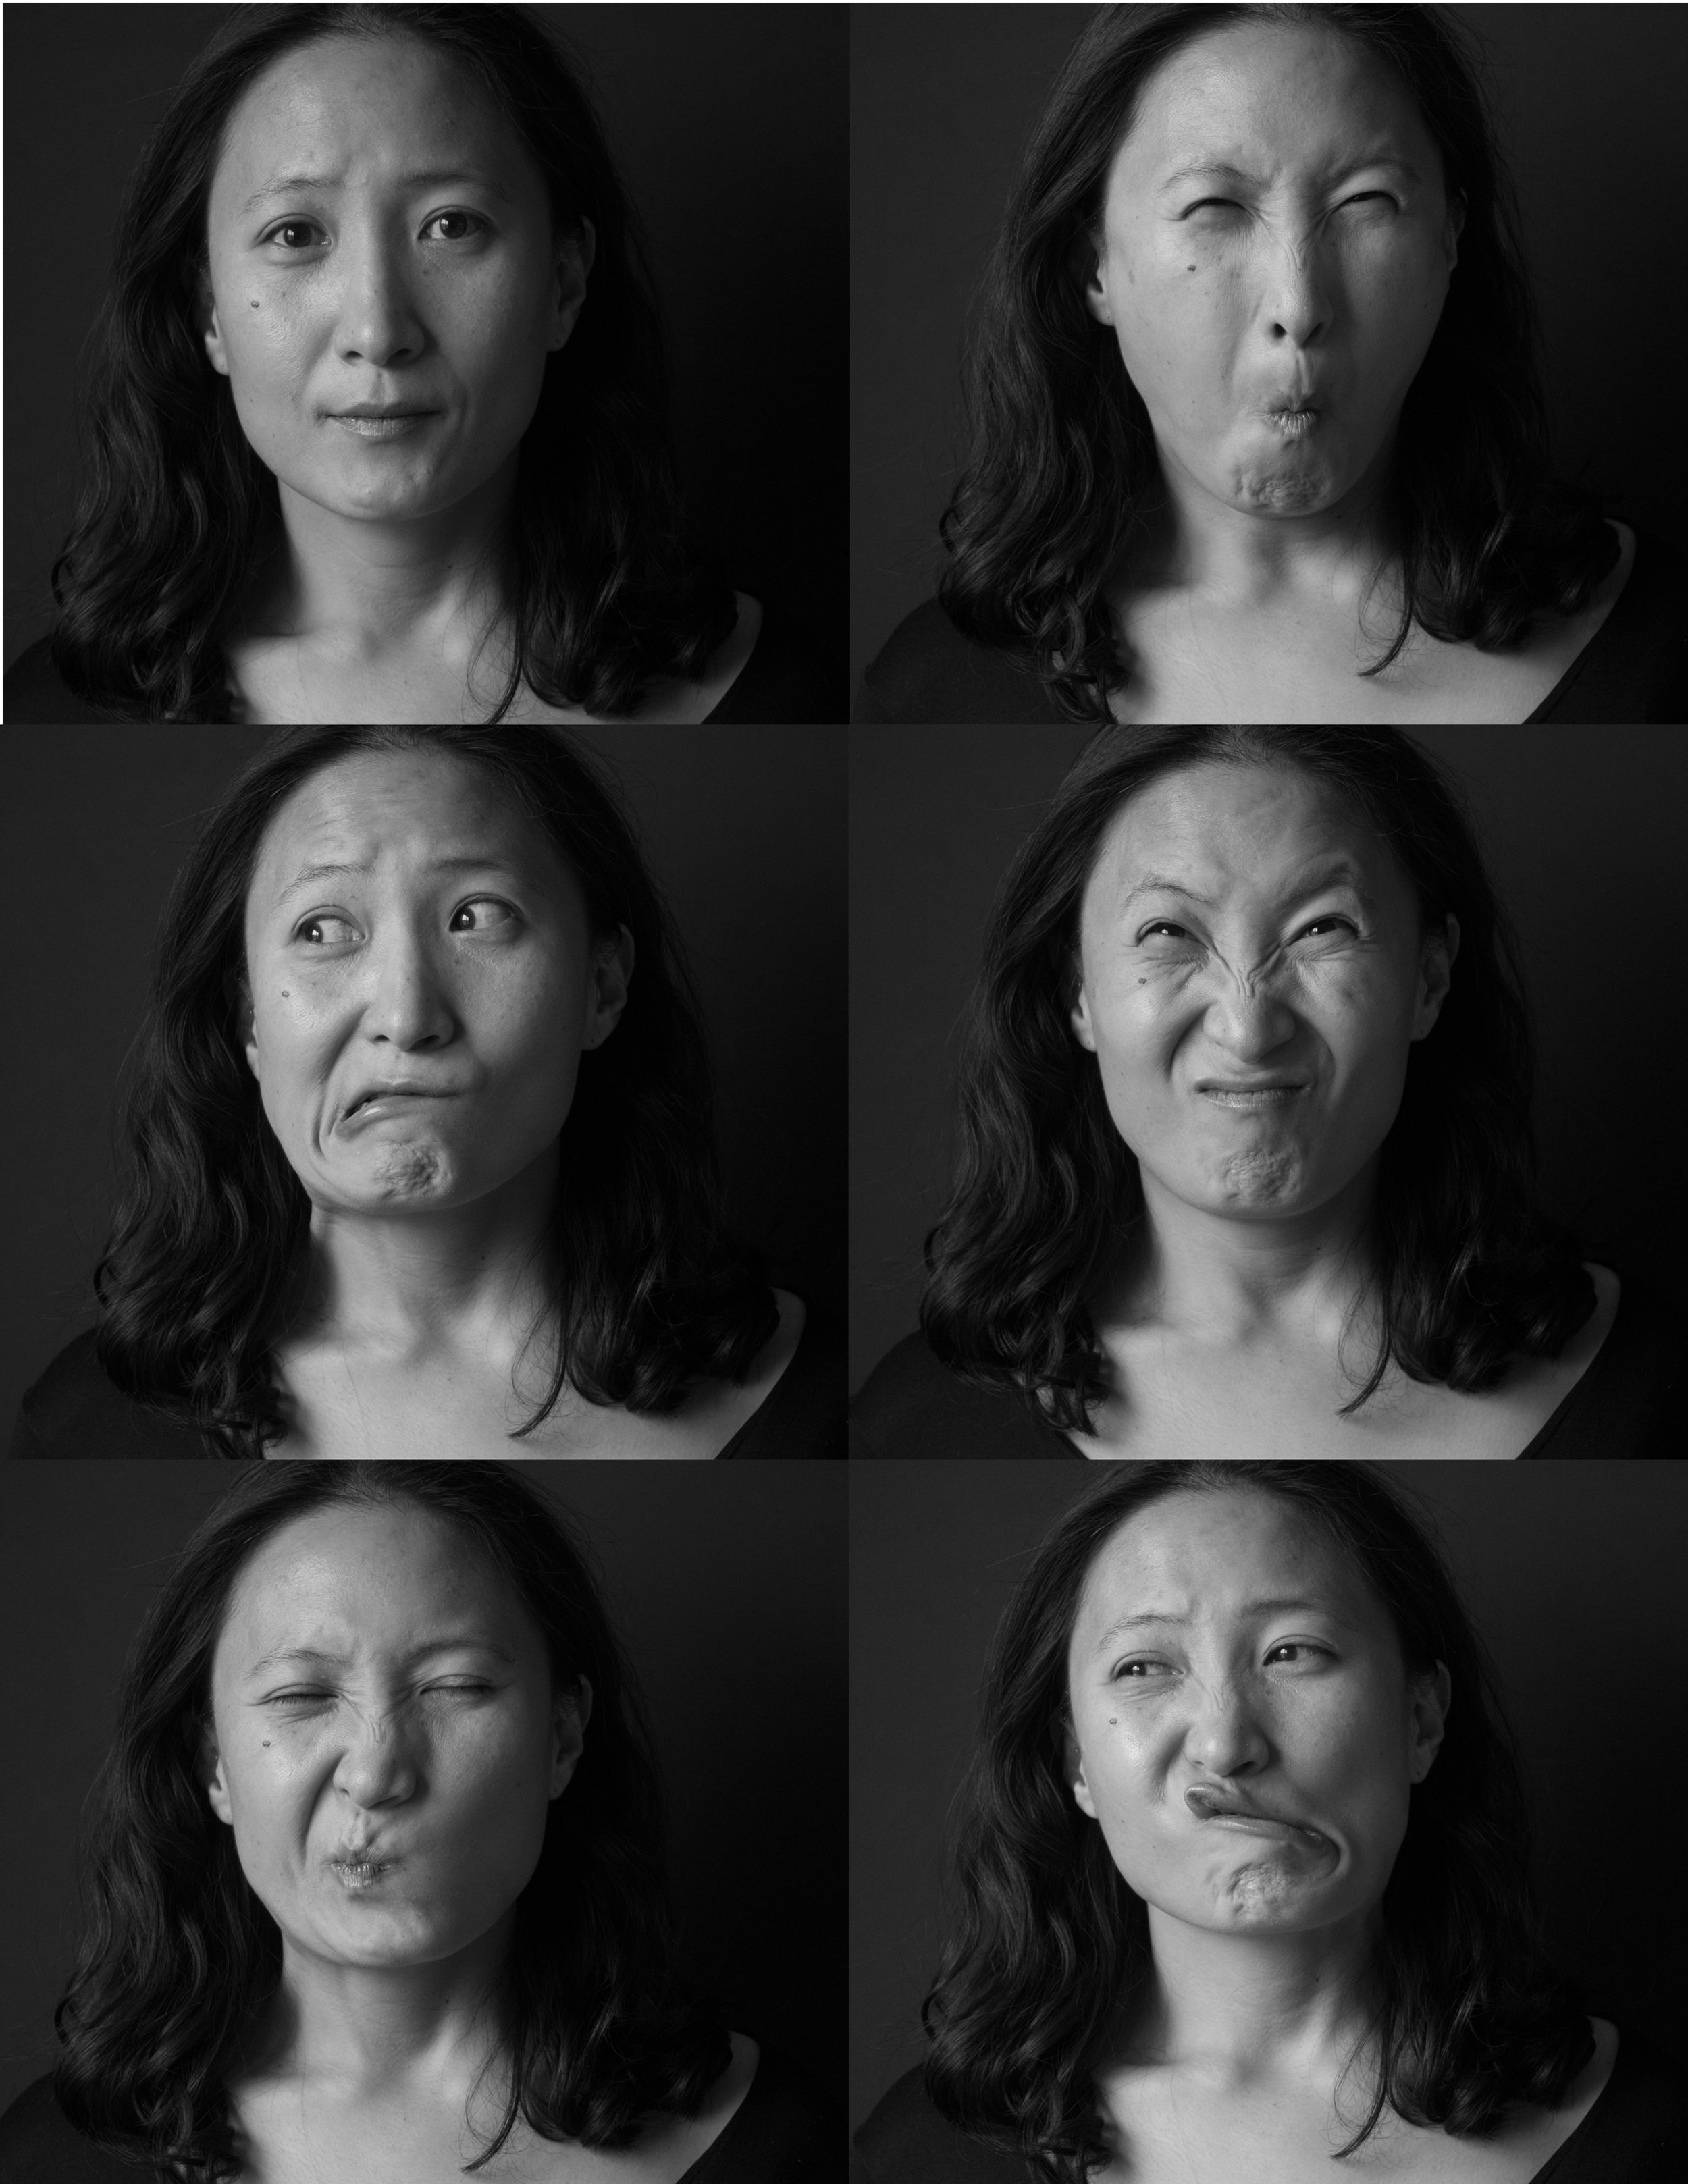 Portraits by Andrea Blanch. All images courtesy of the artist.